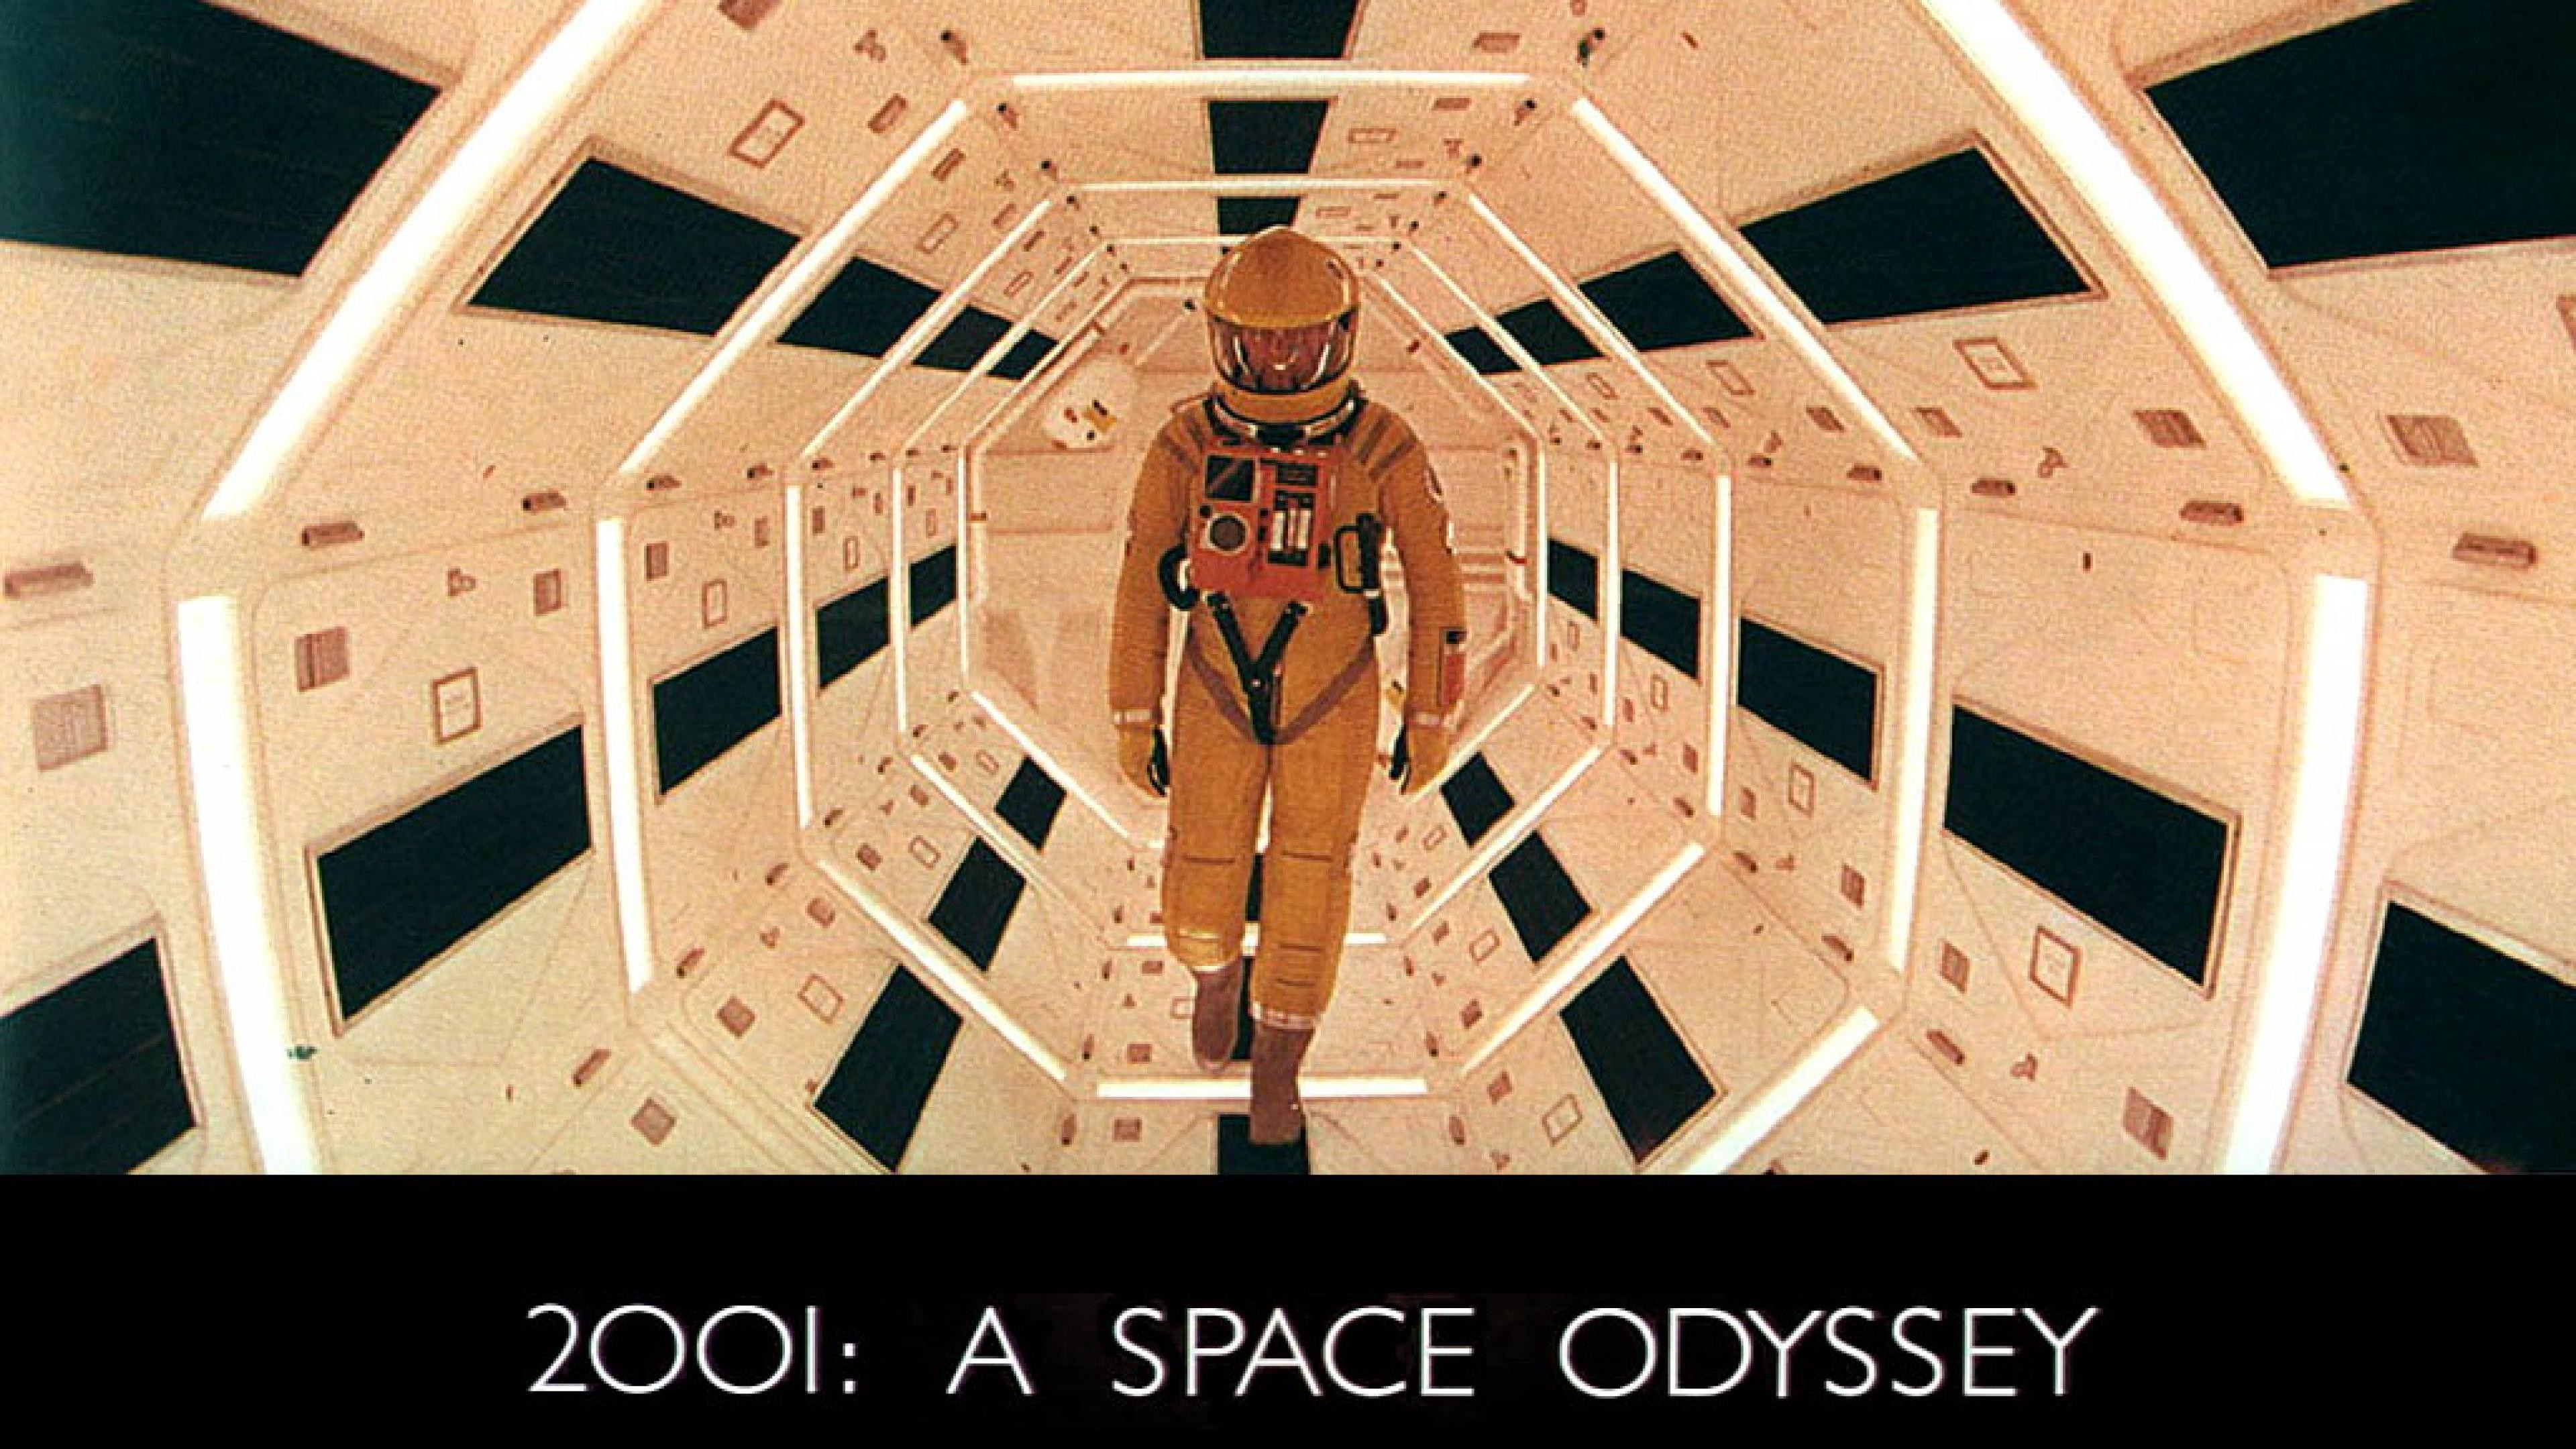 3840x2160 2001 space odyssey hd background hd desktop wallpapers cool images amazing  hd download apple background wallpapers